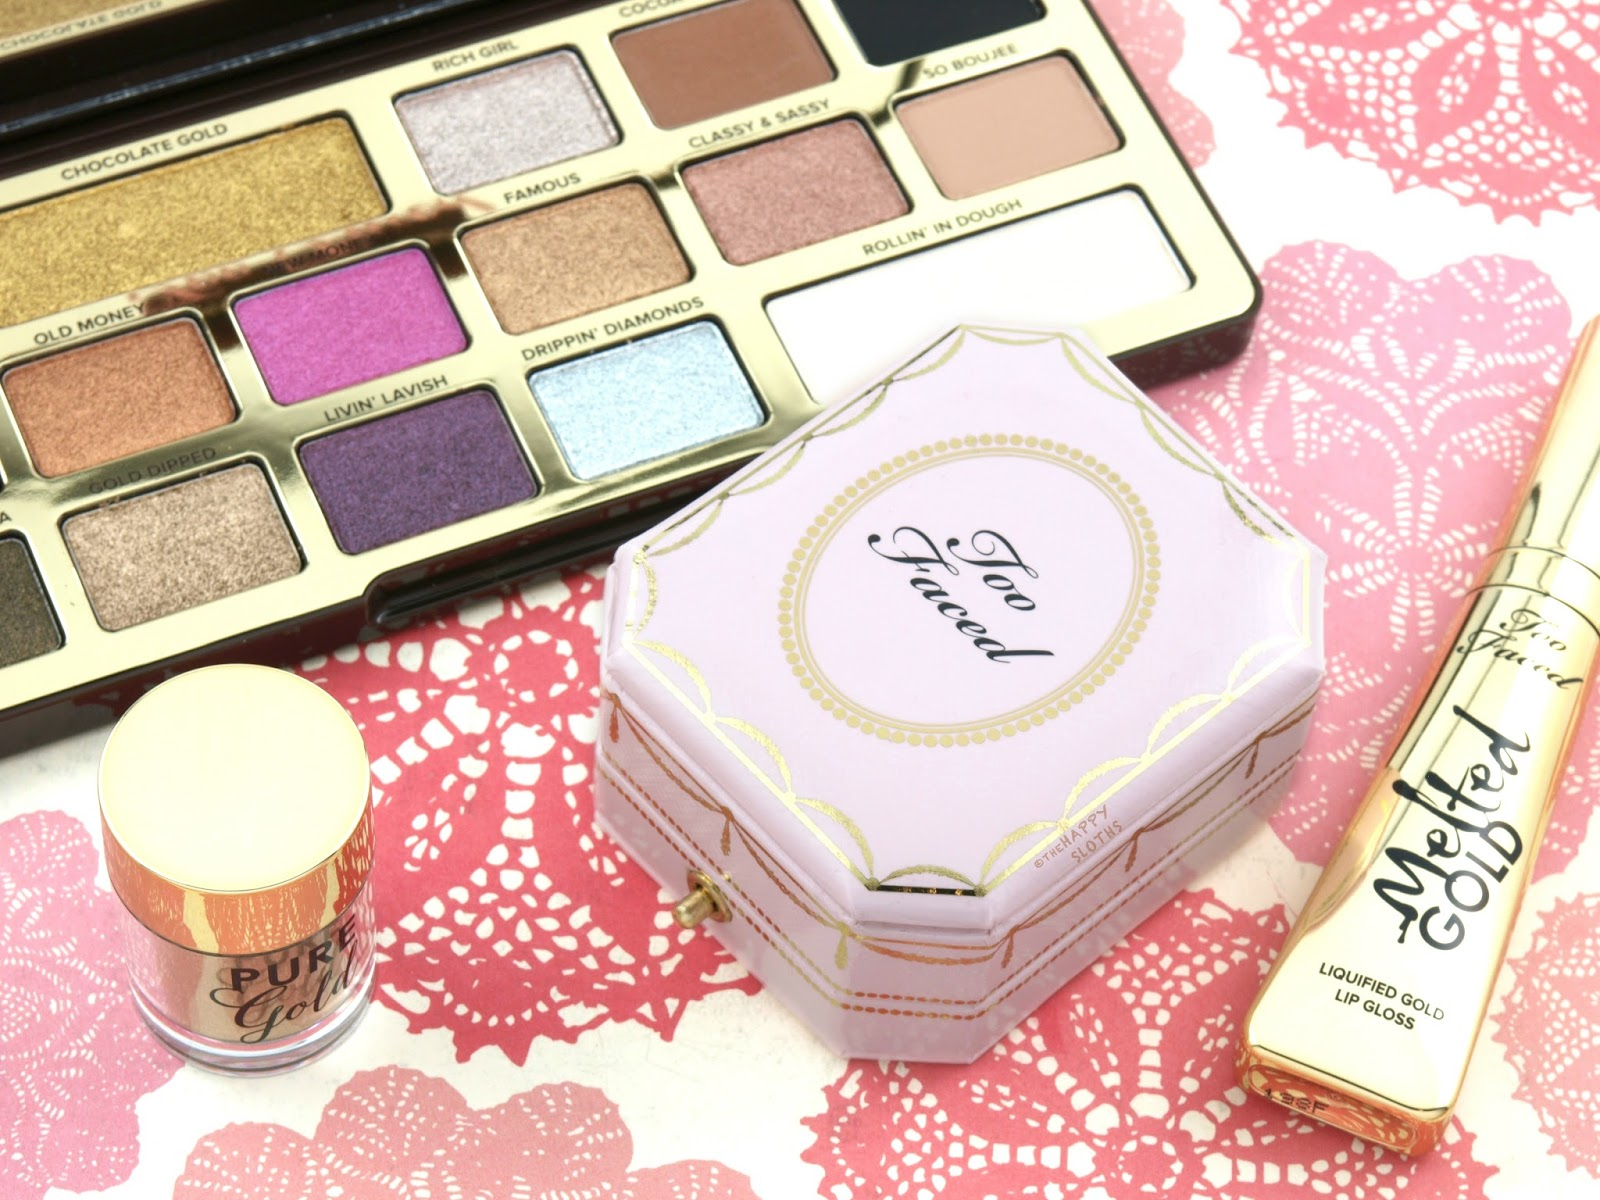 Too Faced Diamond Light Highlighter: Review and Swatches